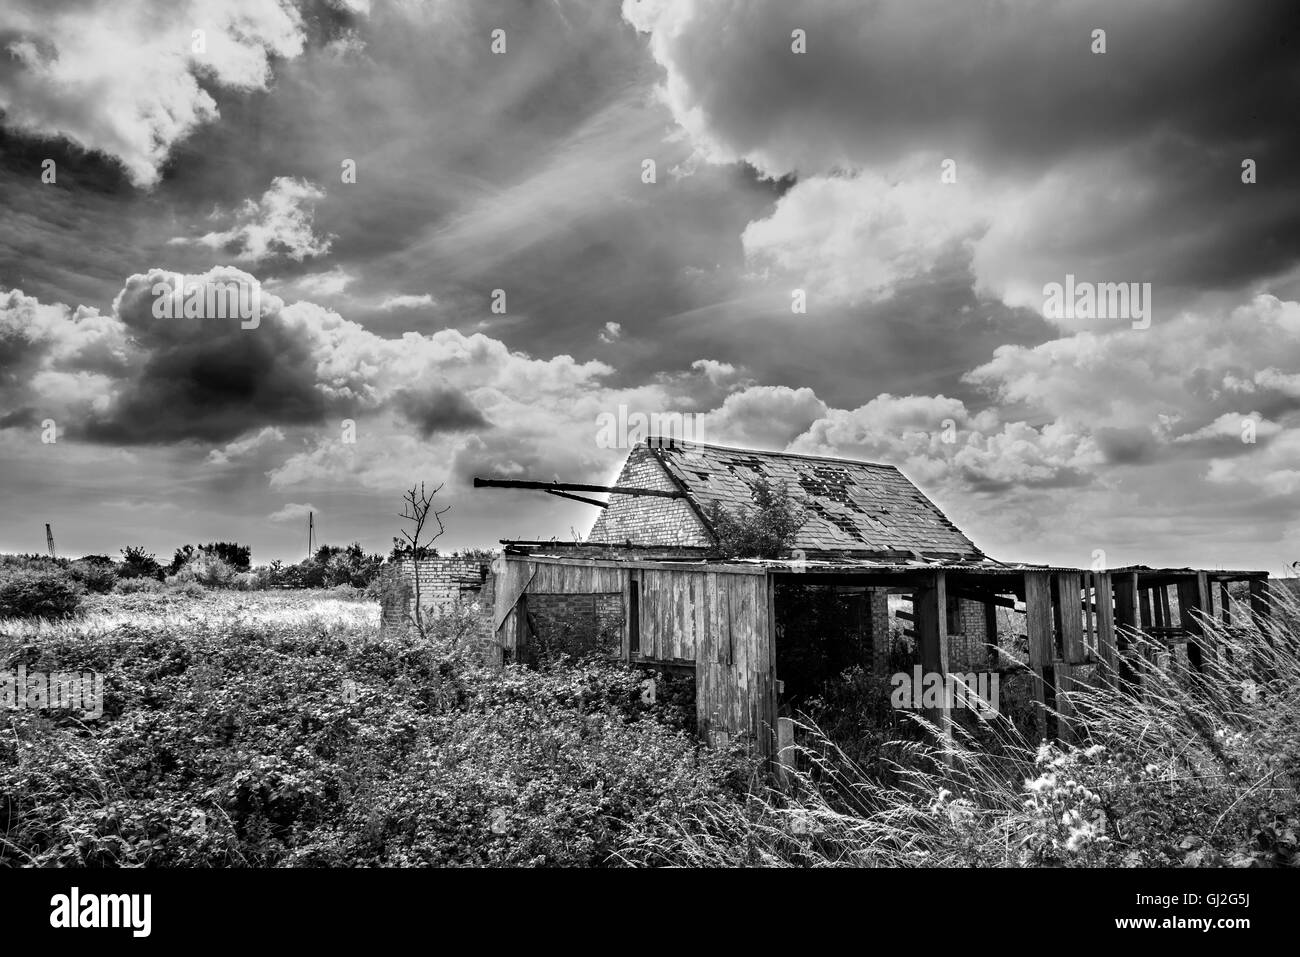 Black and white photograph of a derelict farm in Suffolk with billowing clouds - Stock Image